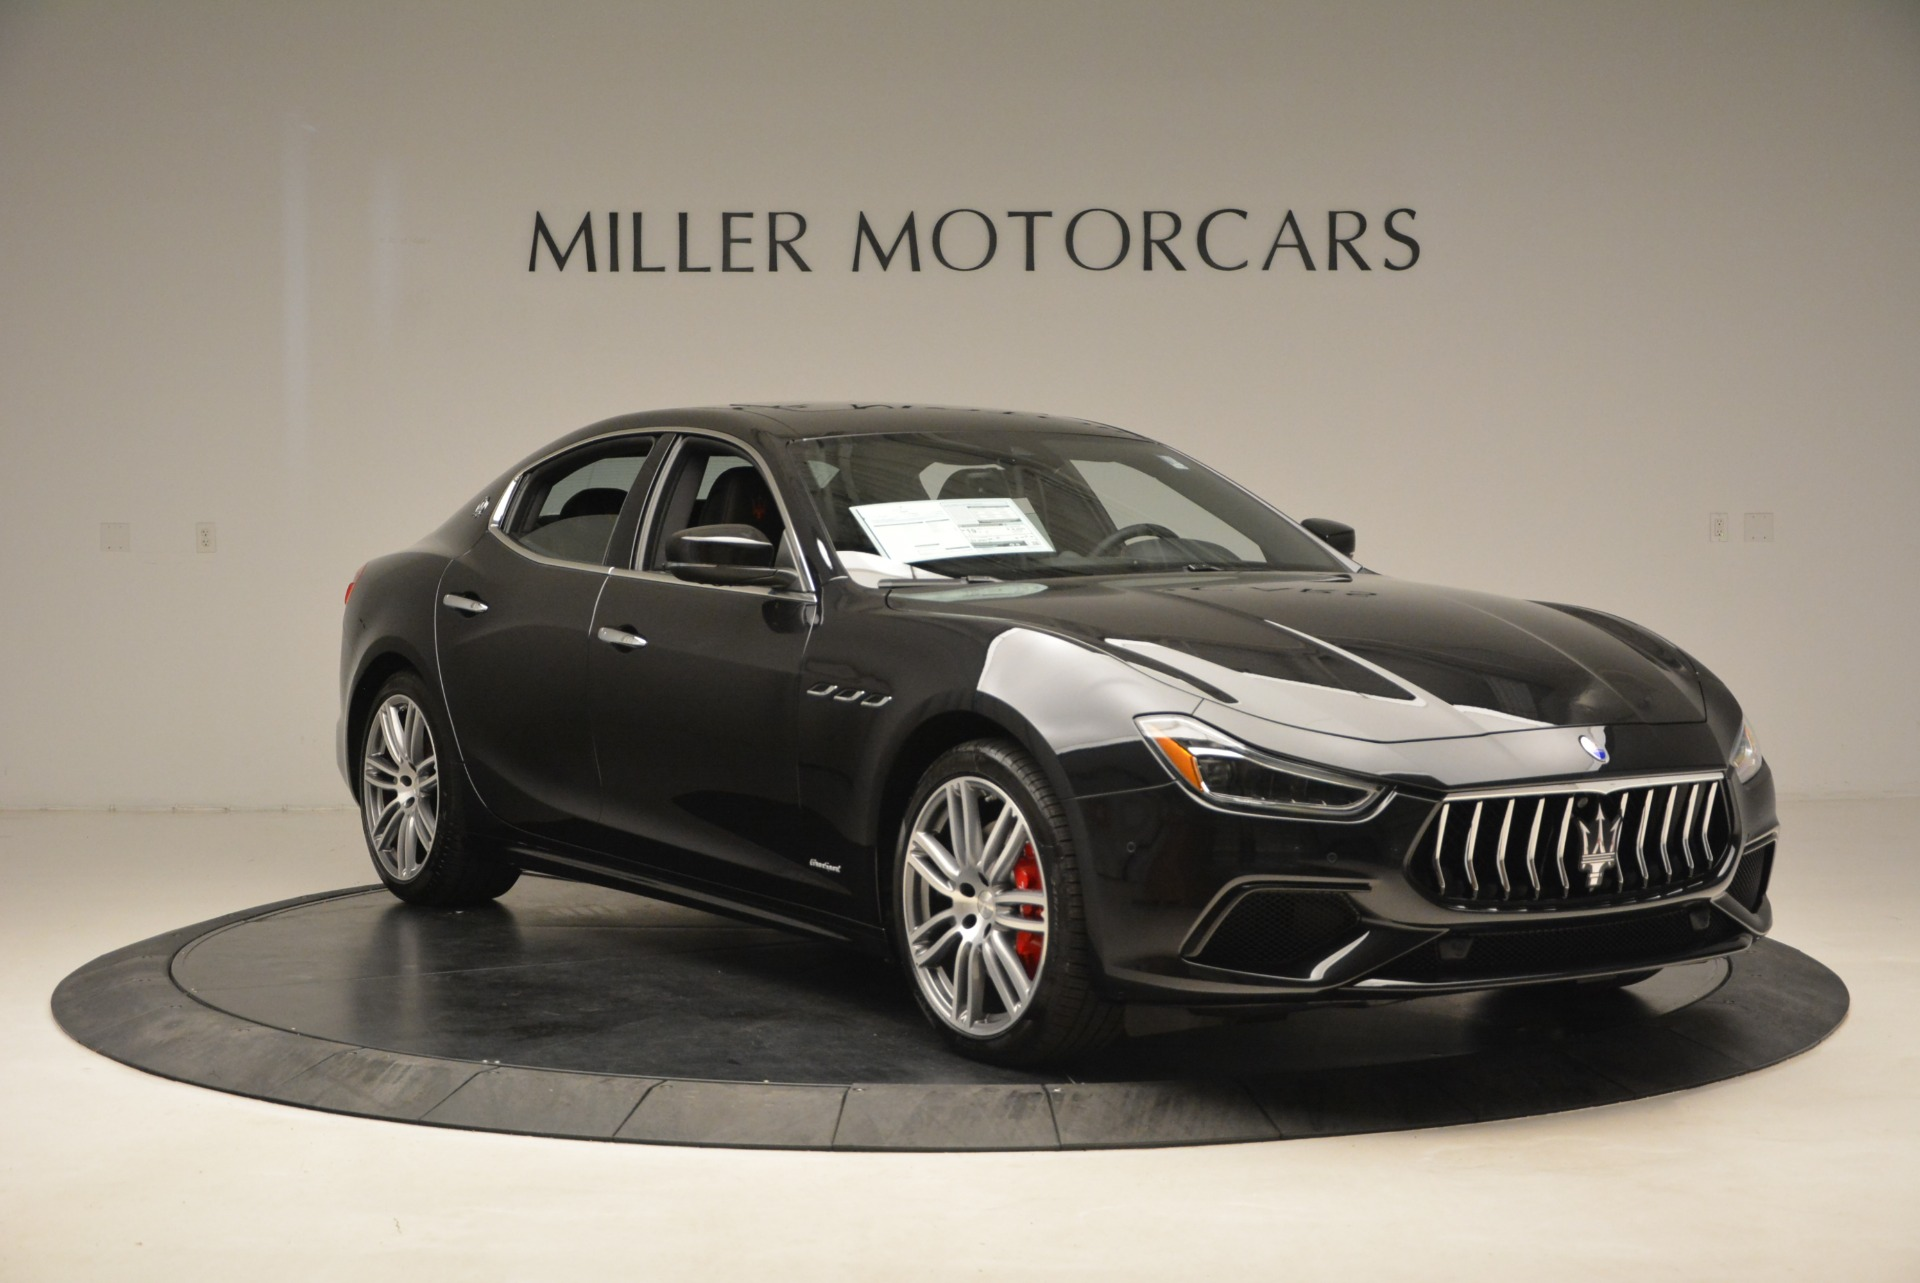 New 2019 Maserati Ghibli S Q4 GranSport For Sale In Westport, CT 2597_p11